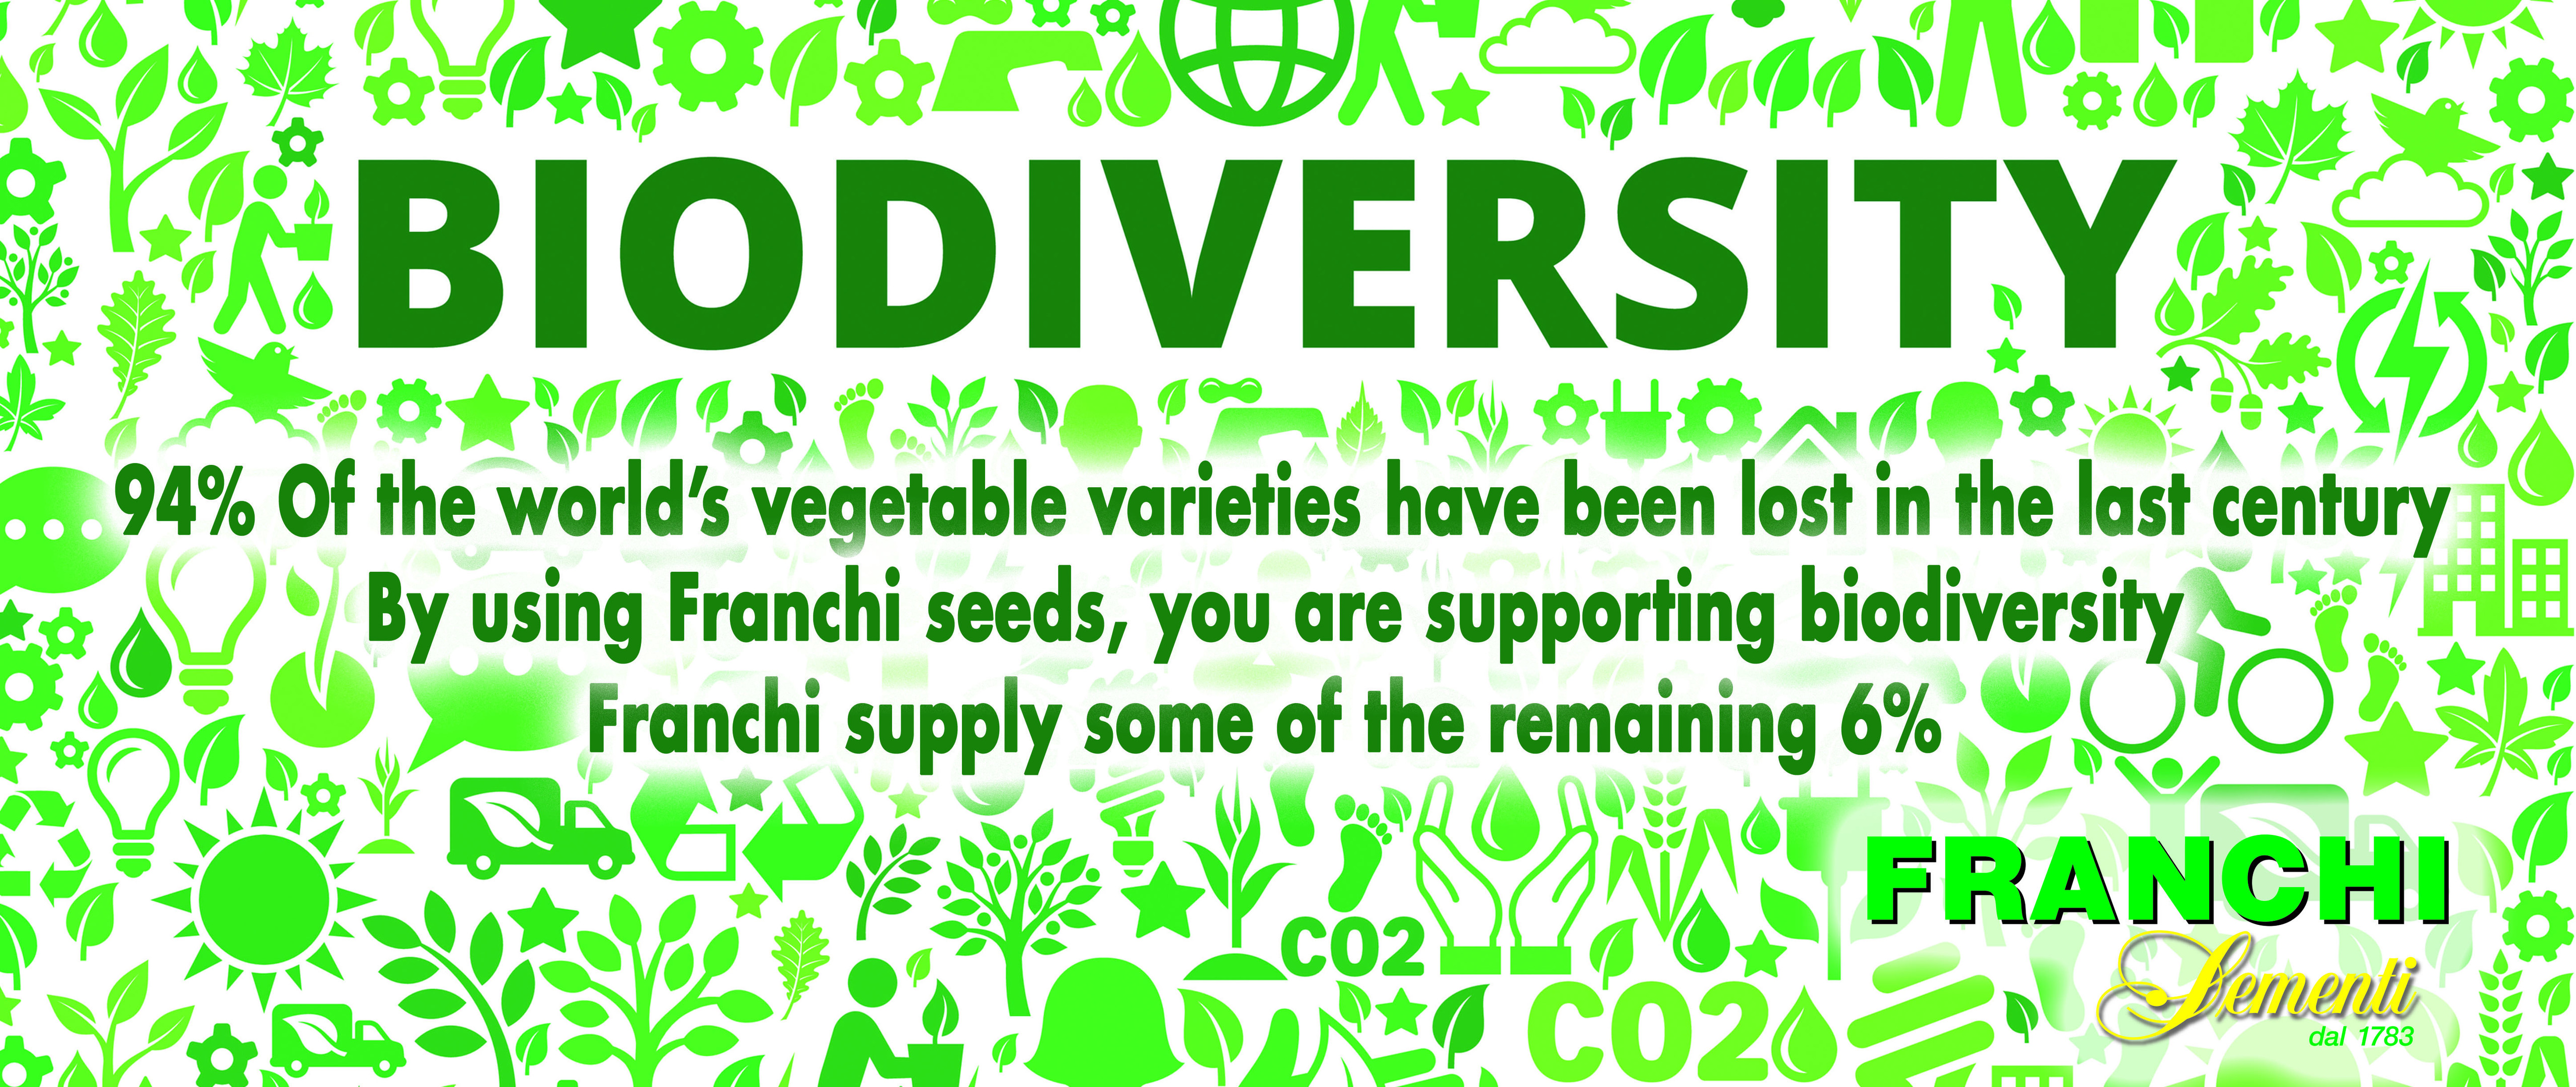 94% of the world's heritage veg varieties have been lost in just one century. By using Franchi seeds, you are supporting Biodiversity.